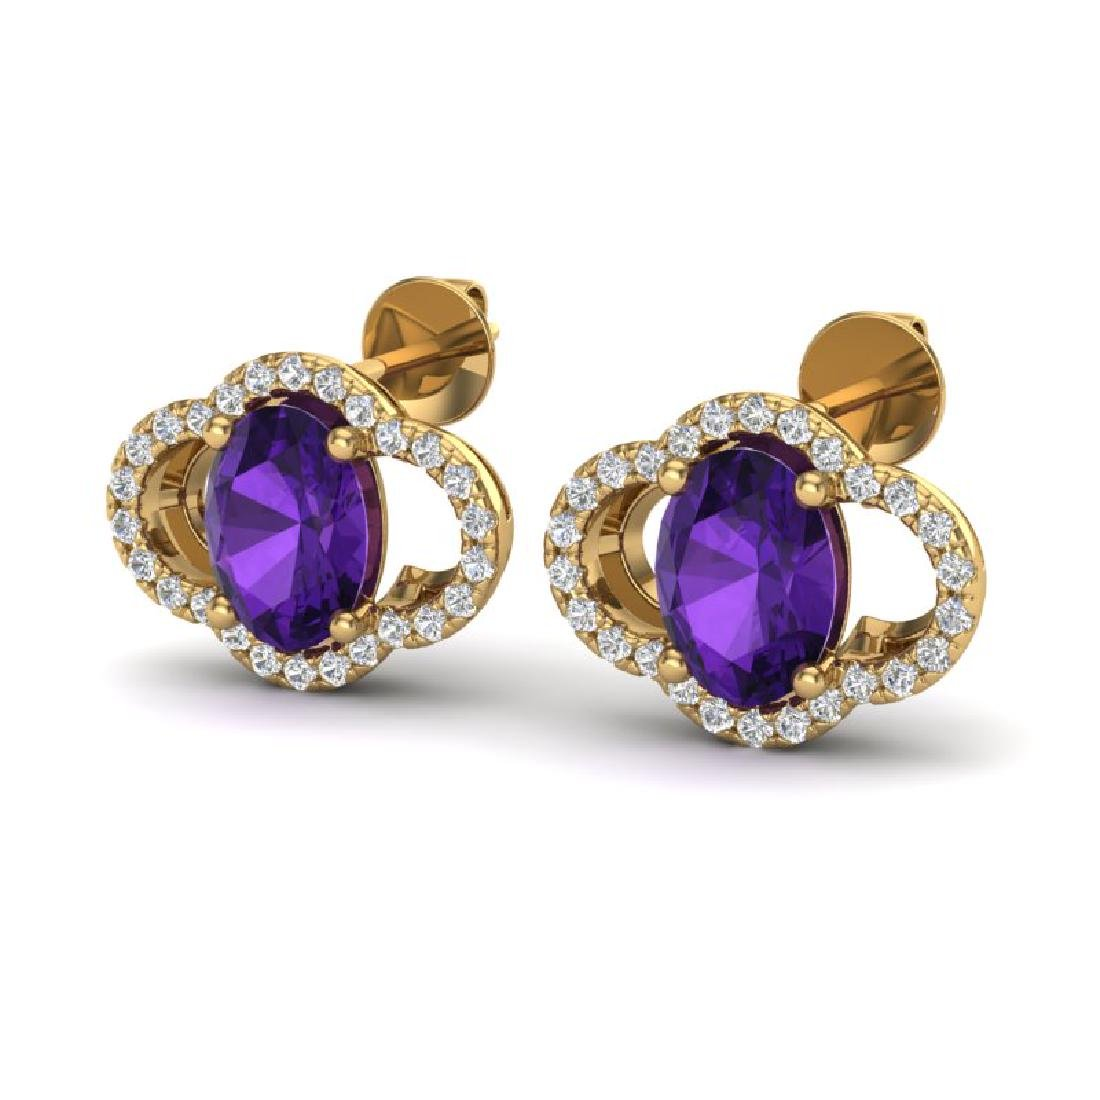 4 CTW Amethyst And Micro Pave VS/SI Diamond Earrings